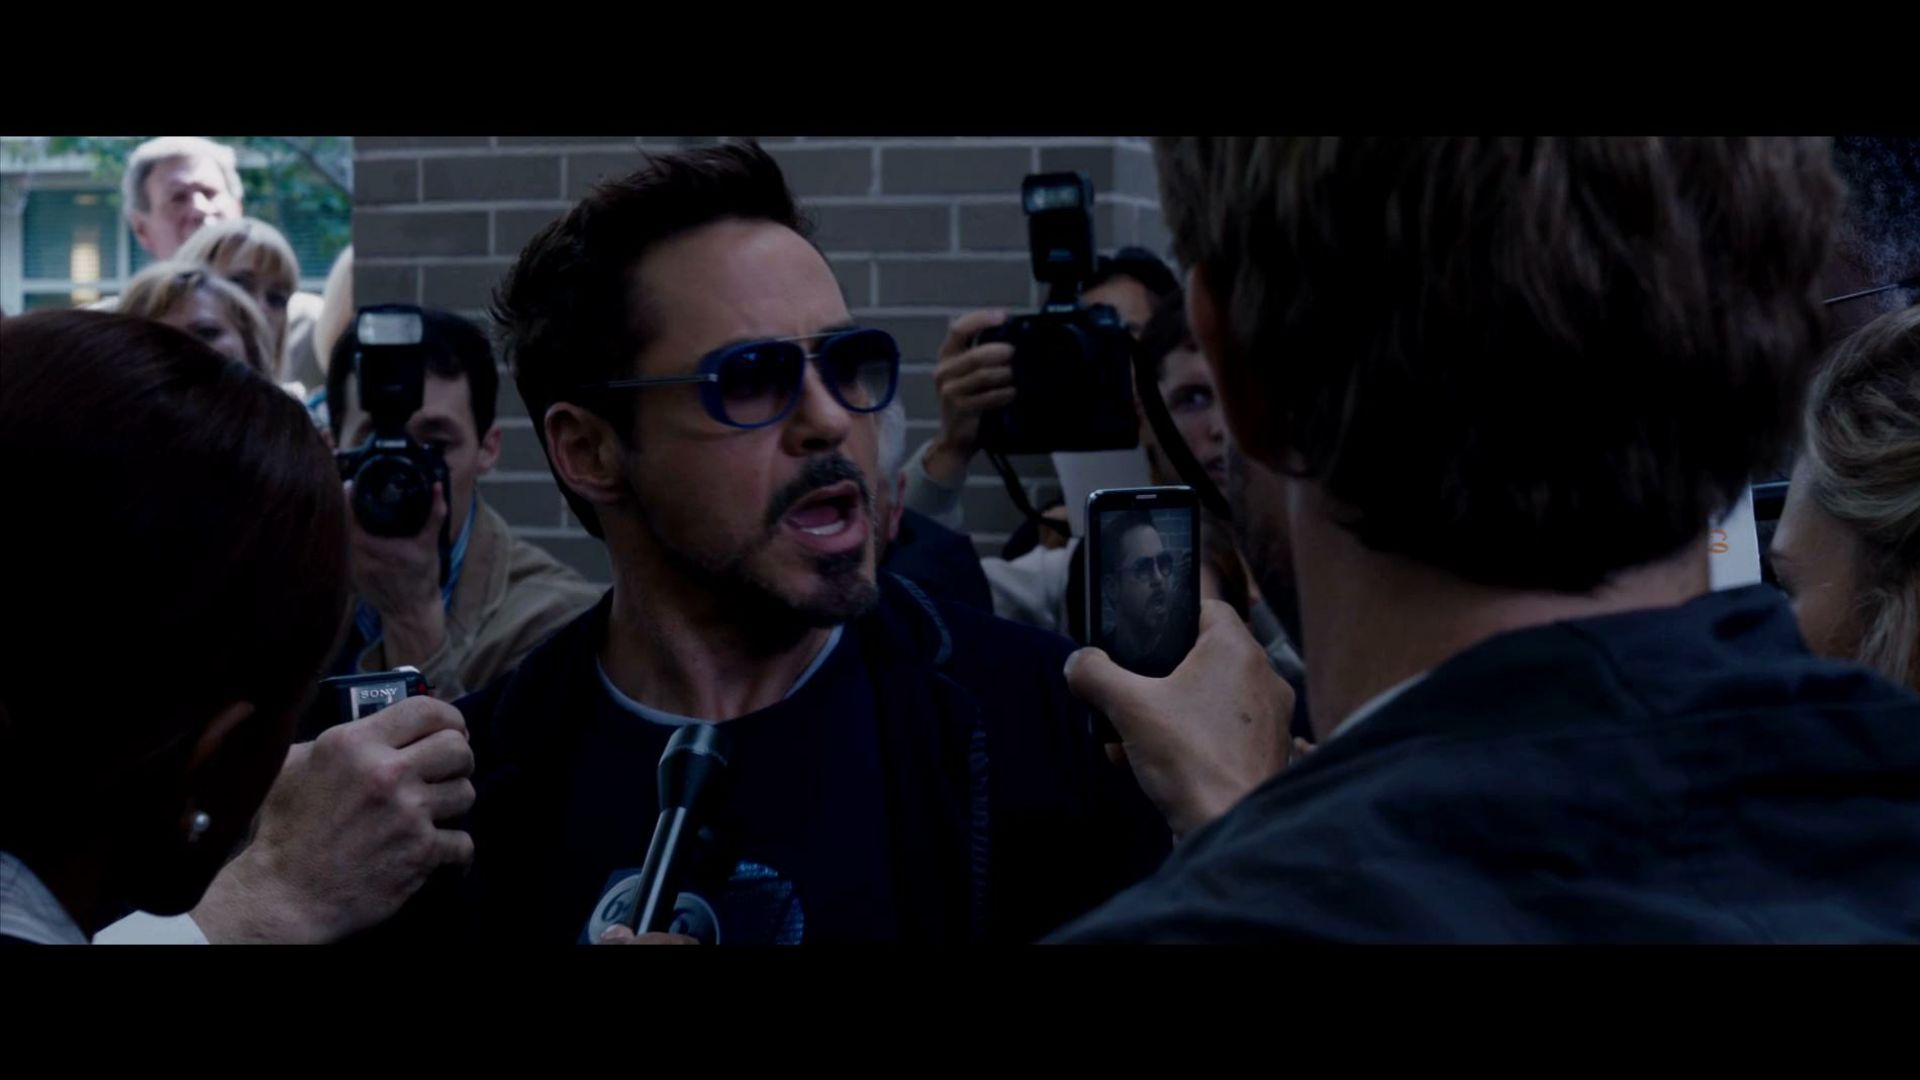 Tony Stark gives out his home address in Iron Man 3